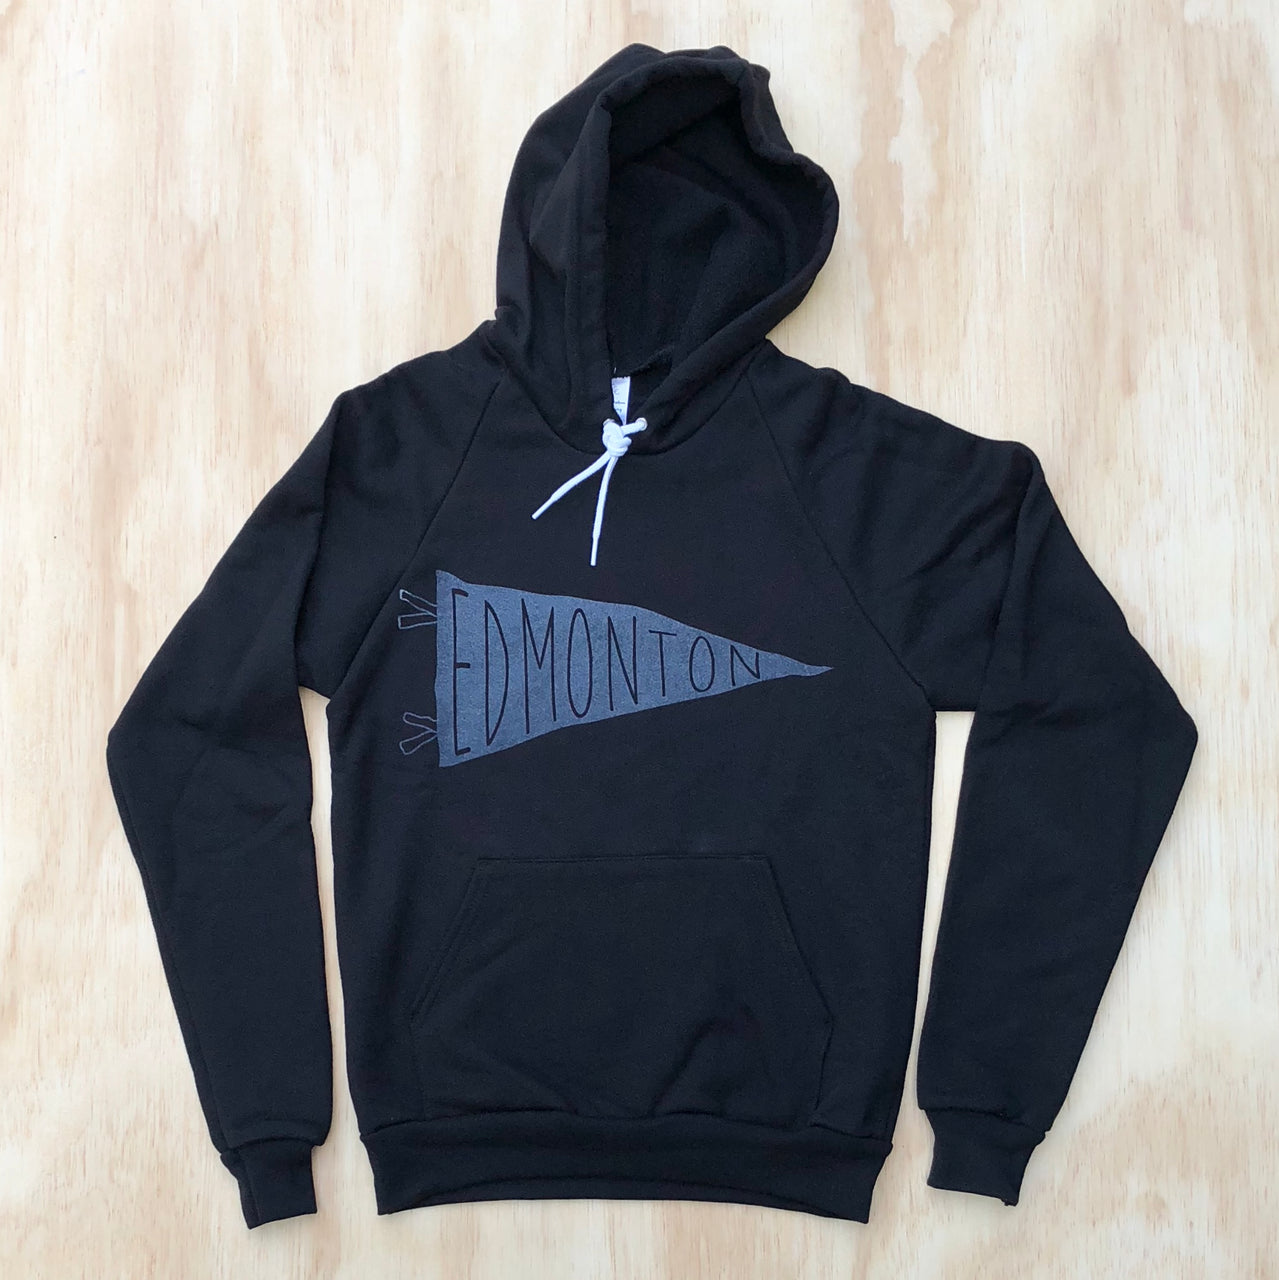 EDMONTON and VANCOUVER Community Hoodie Sweatshirt